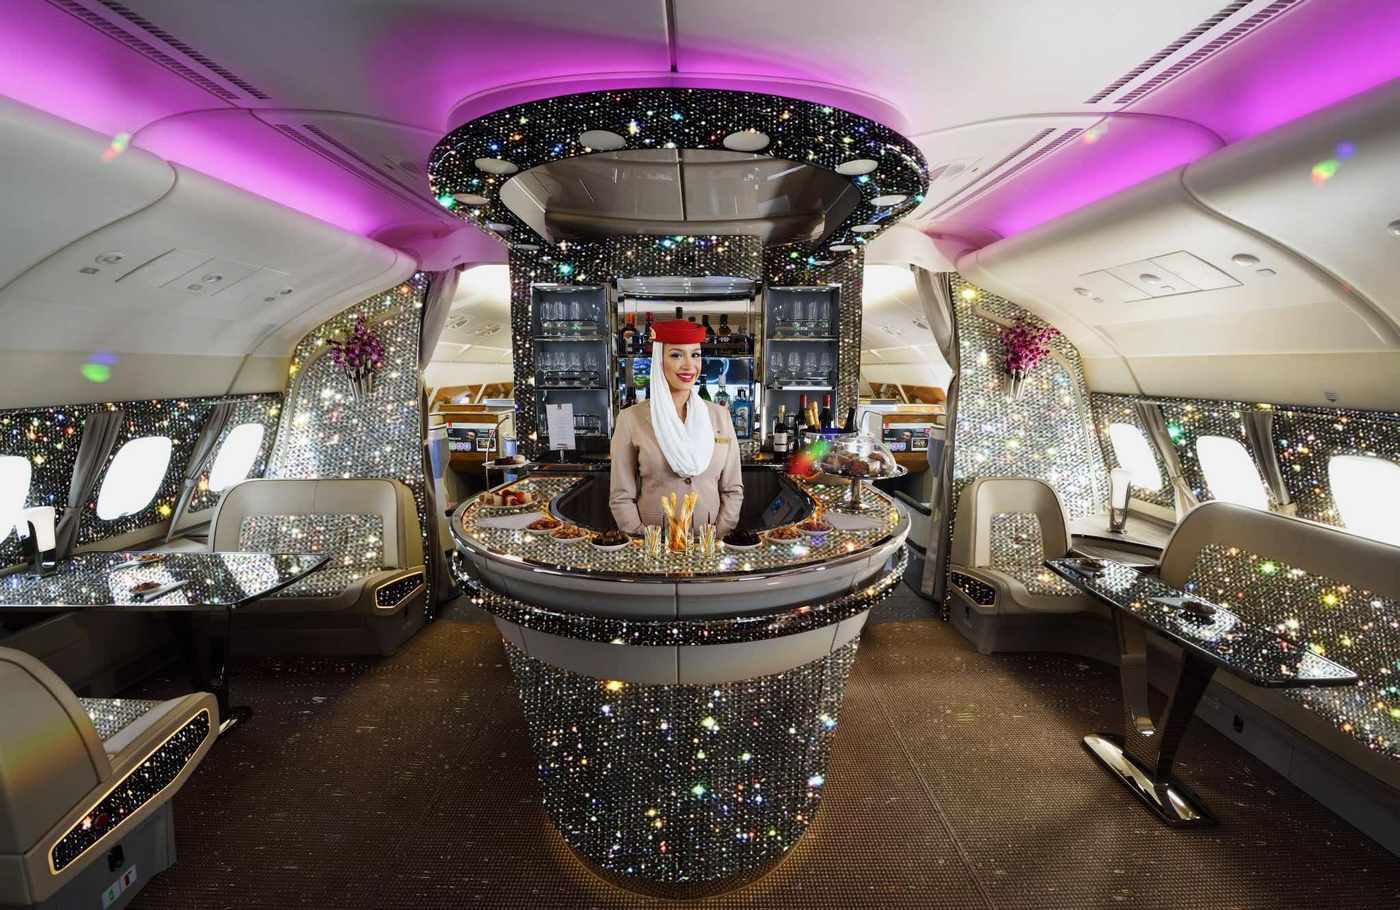 Most Expensive Cars >> Take a look at the diamond-encrusted onboard lounge of the Emirates A380